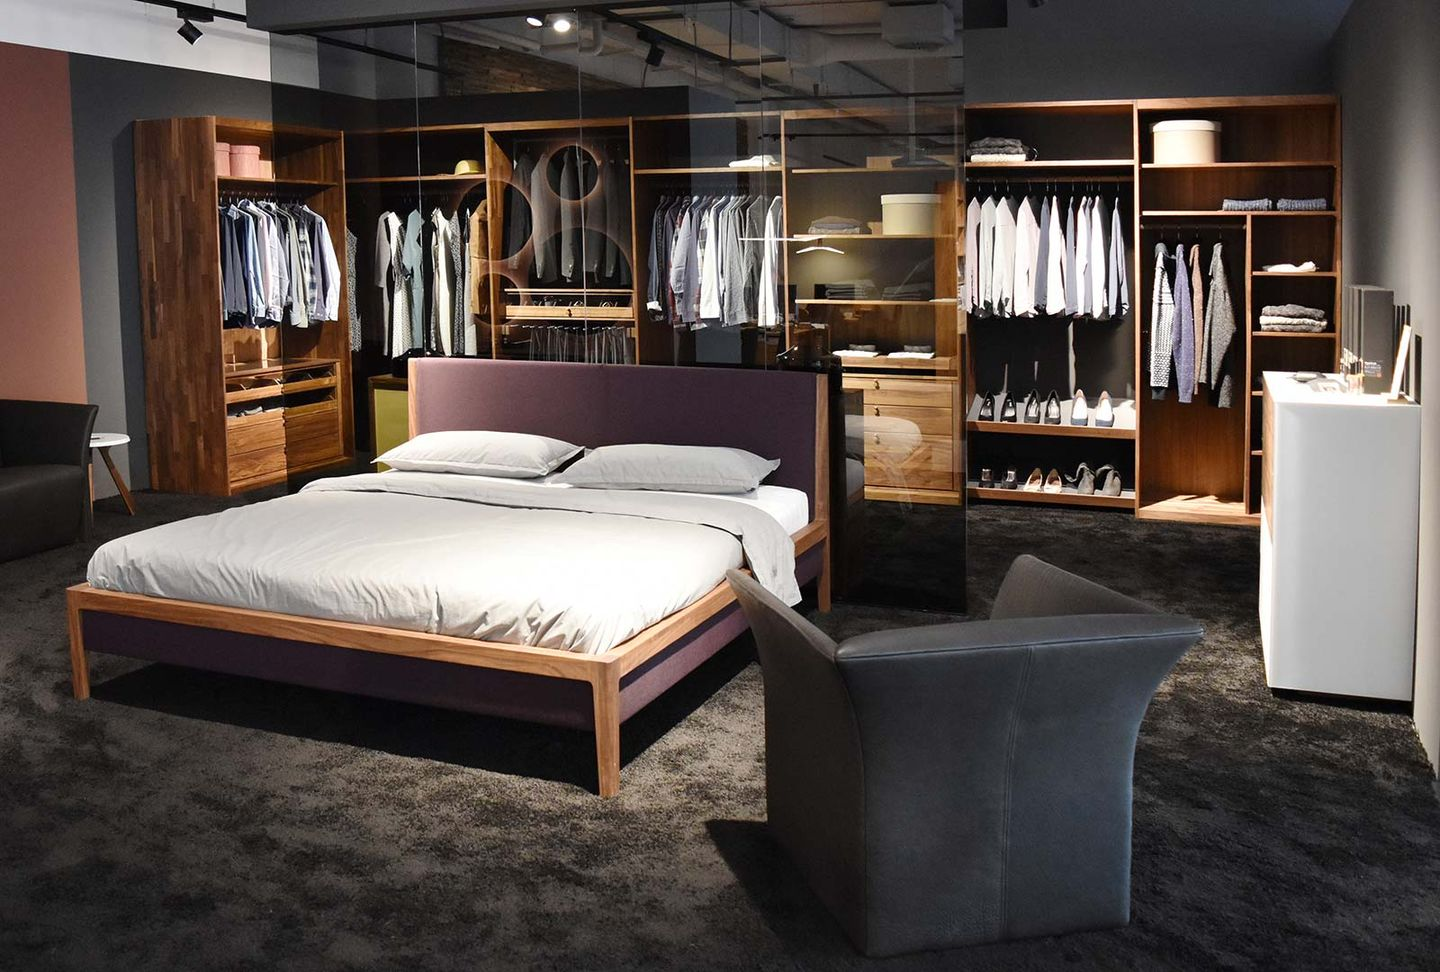 mylon solid wood bed and wardrobe interior